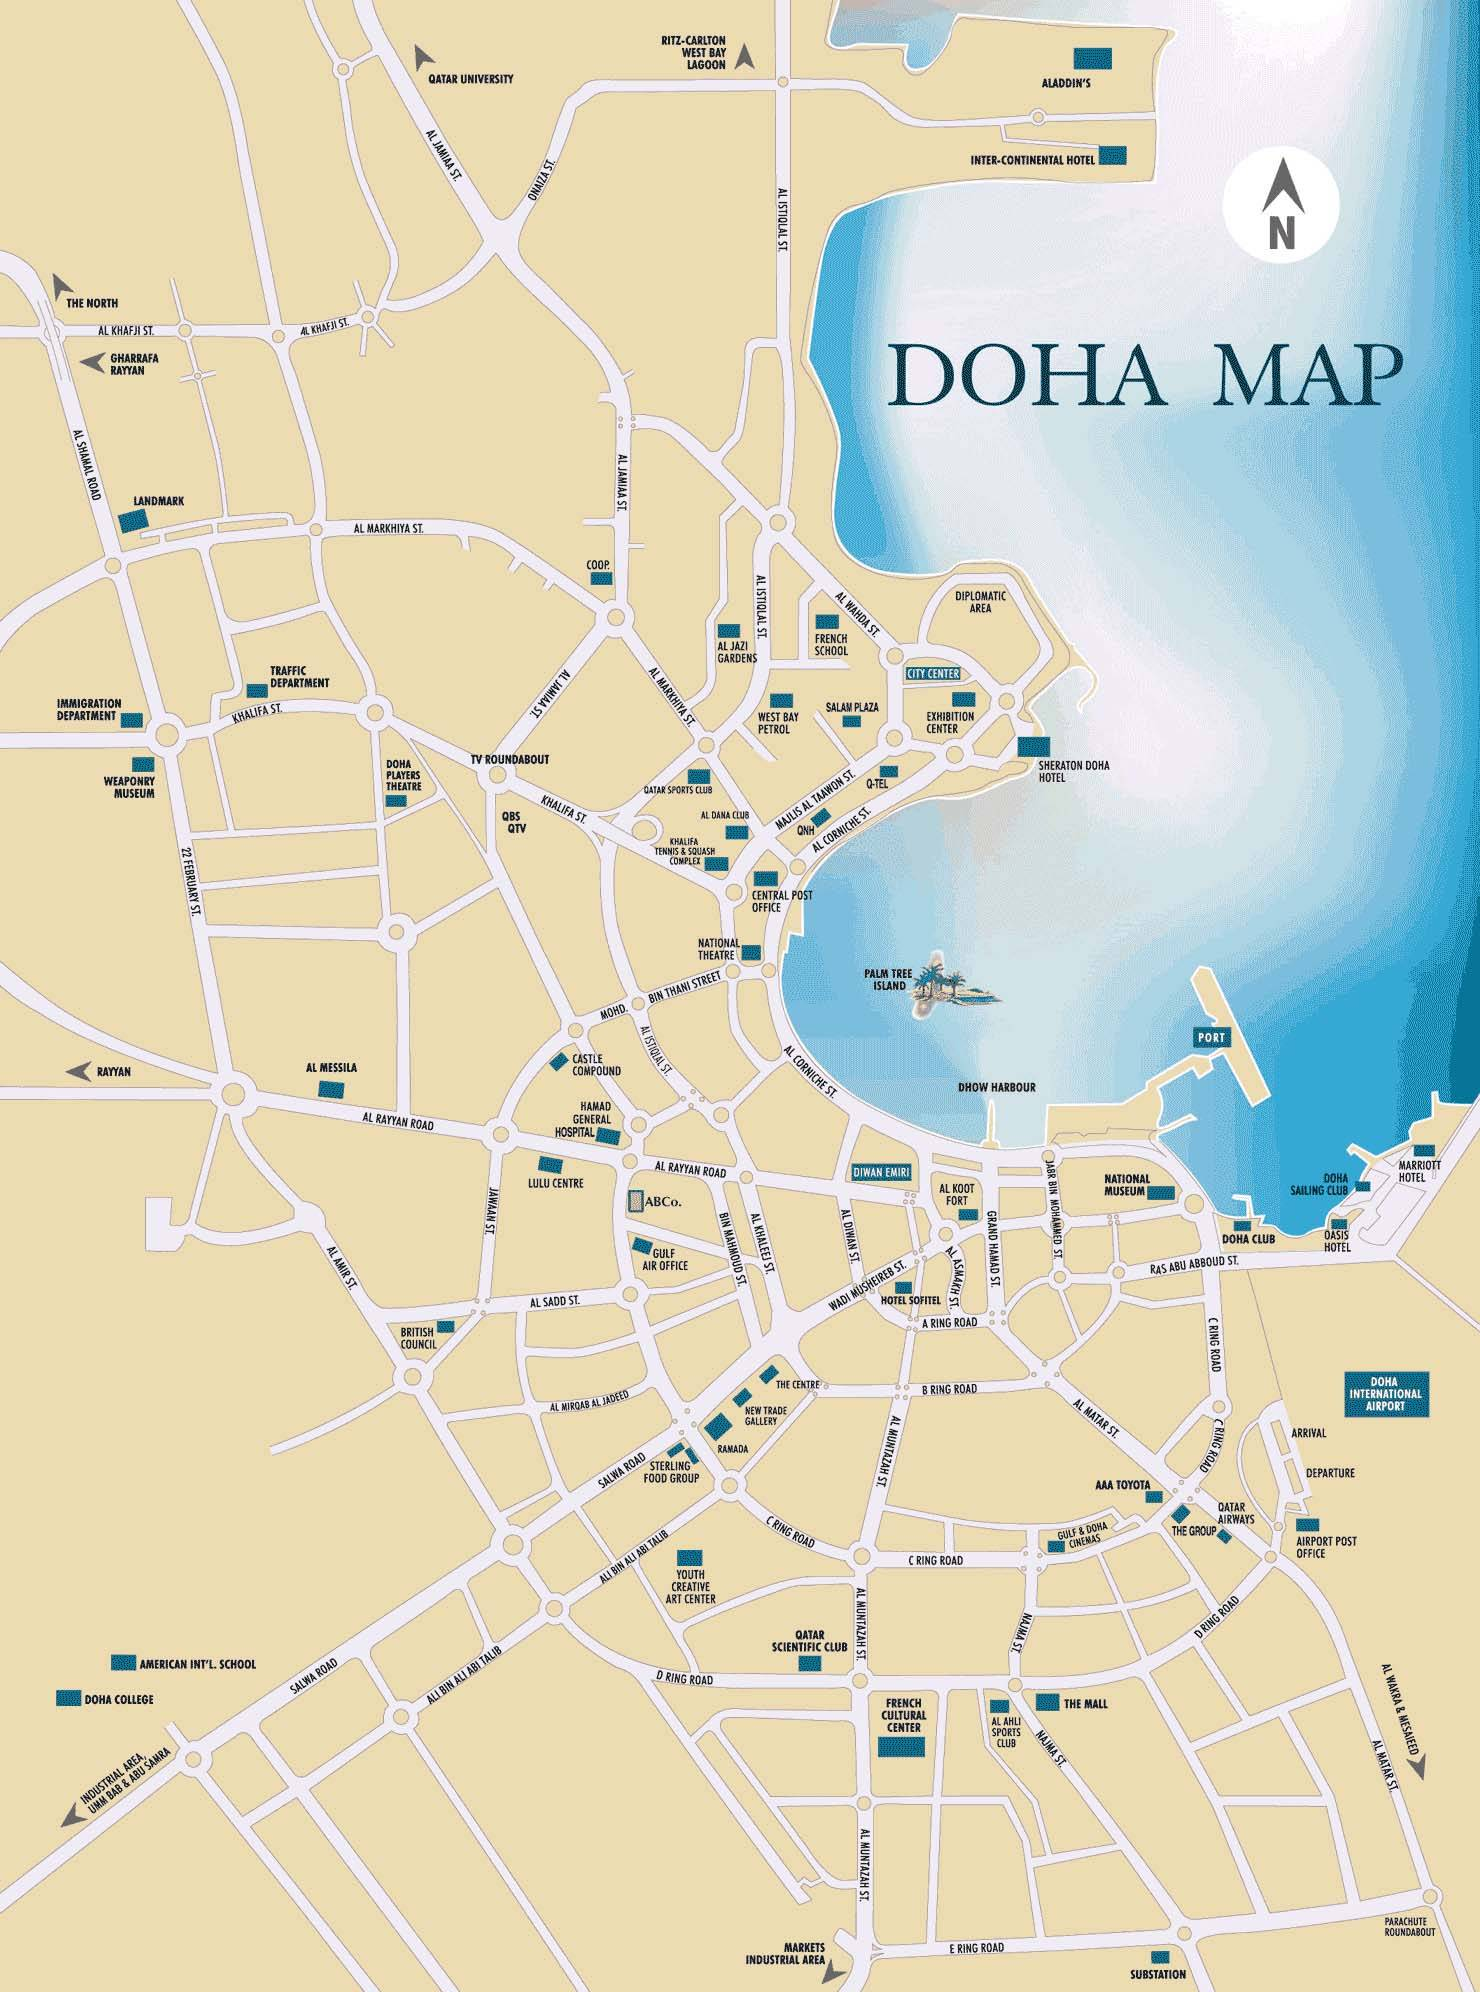 Large doha maps for free download and print high resolution and large map of doha 1 gumiabroncs Image collections